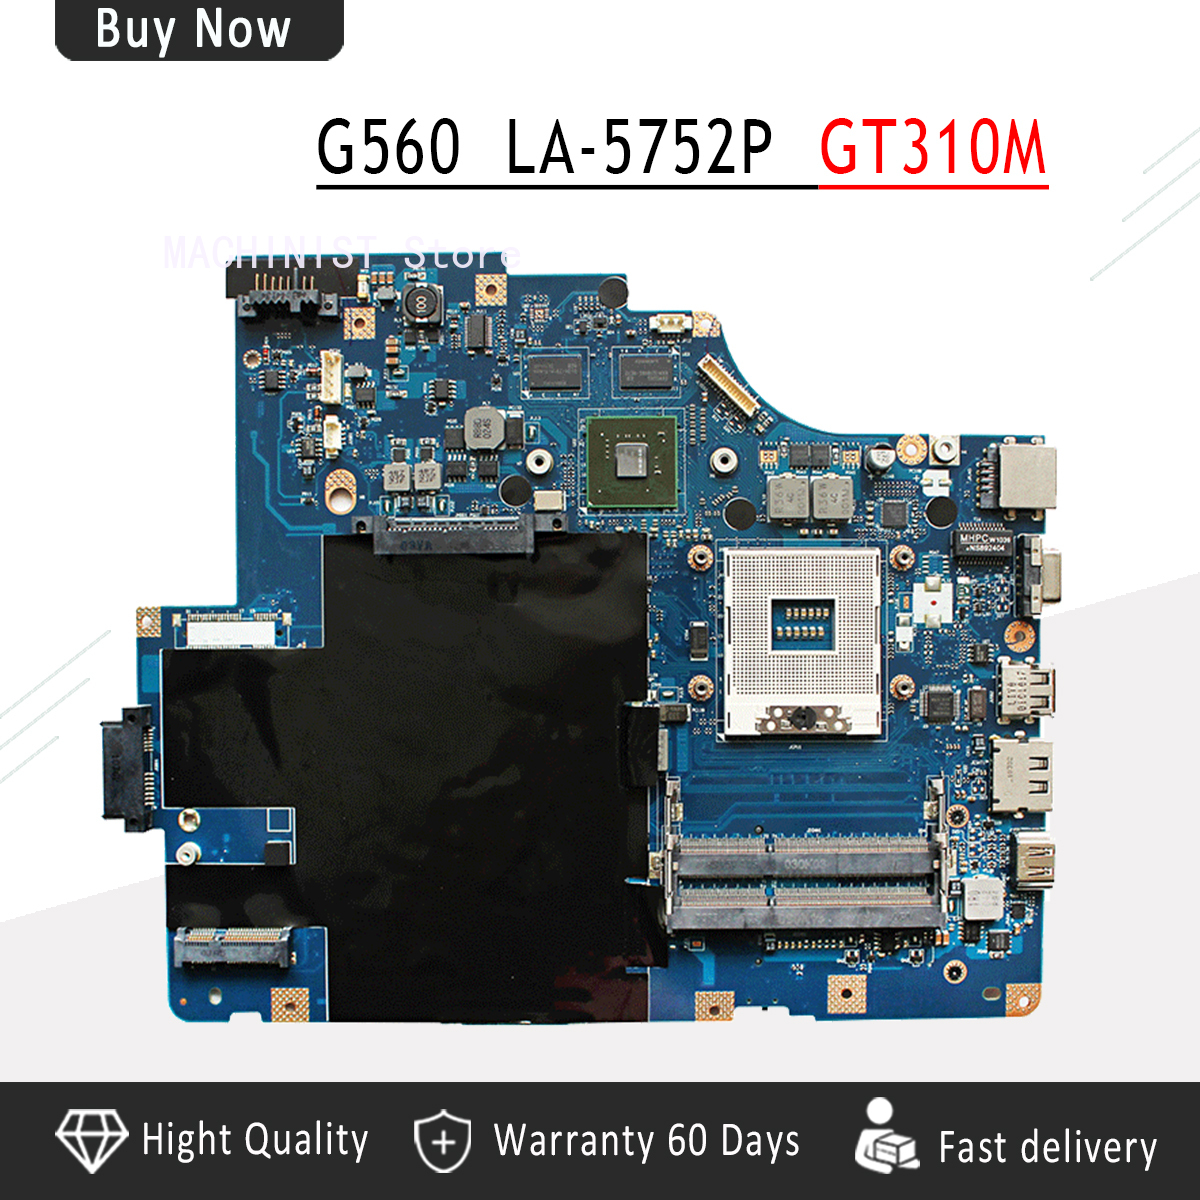 LA-5752P For <font><b>Lenovo</b></font> G560 <font><b>Z560</b></font> Laptop Motherboard NIWE2 LA-5752P Rev:1.0 with GT310M Video Card DDR3 image